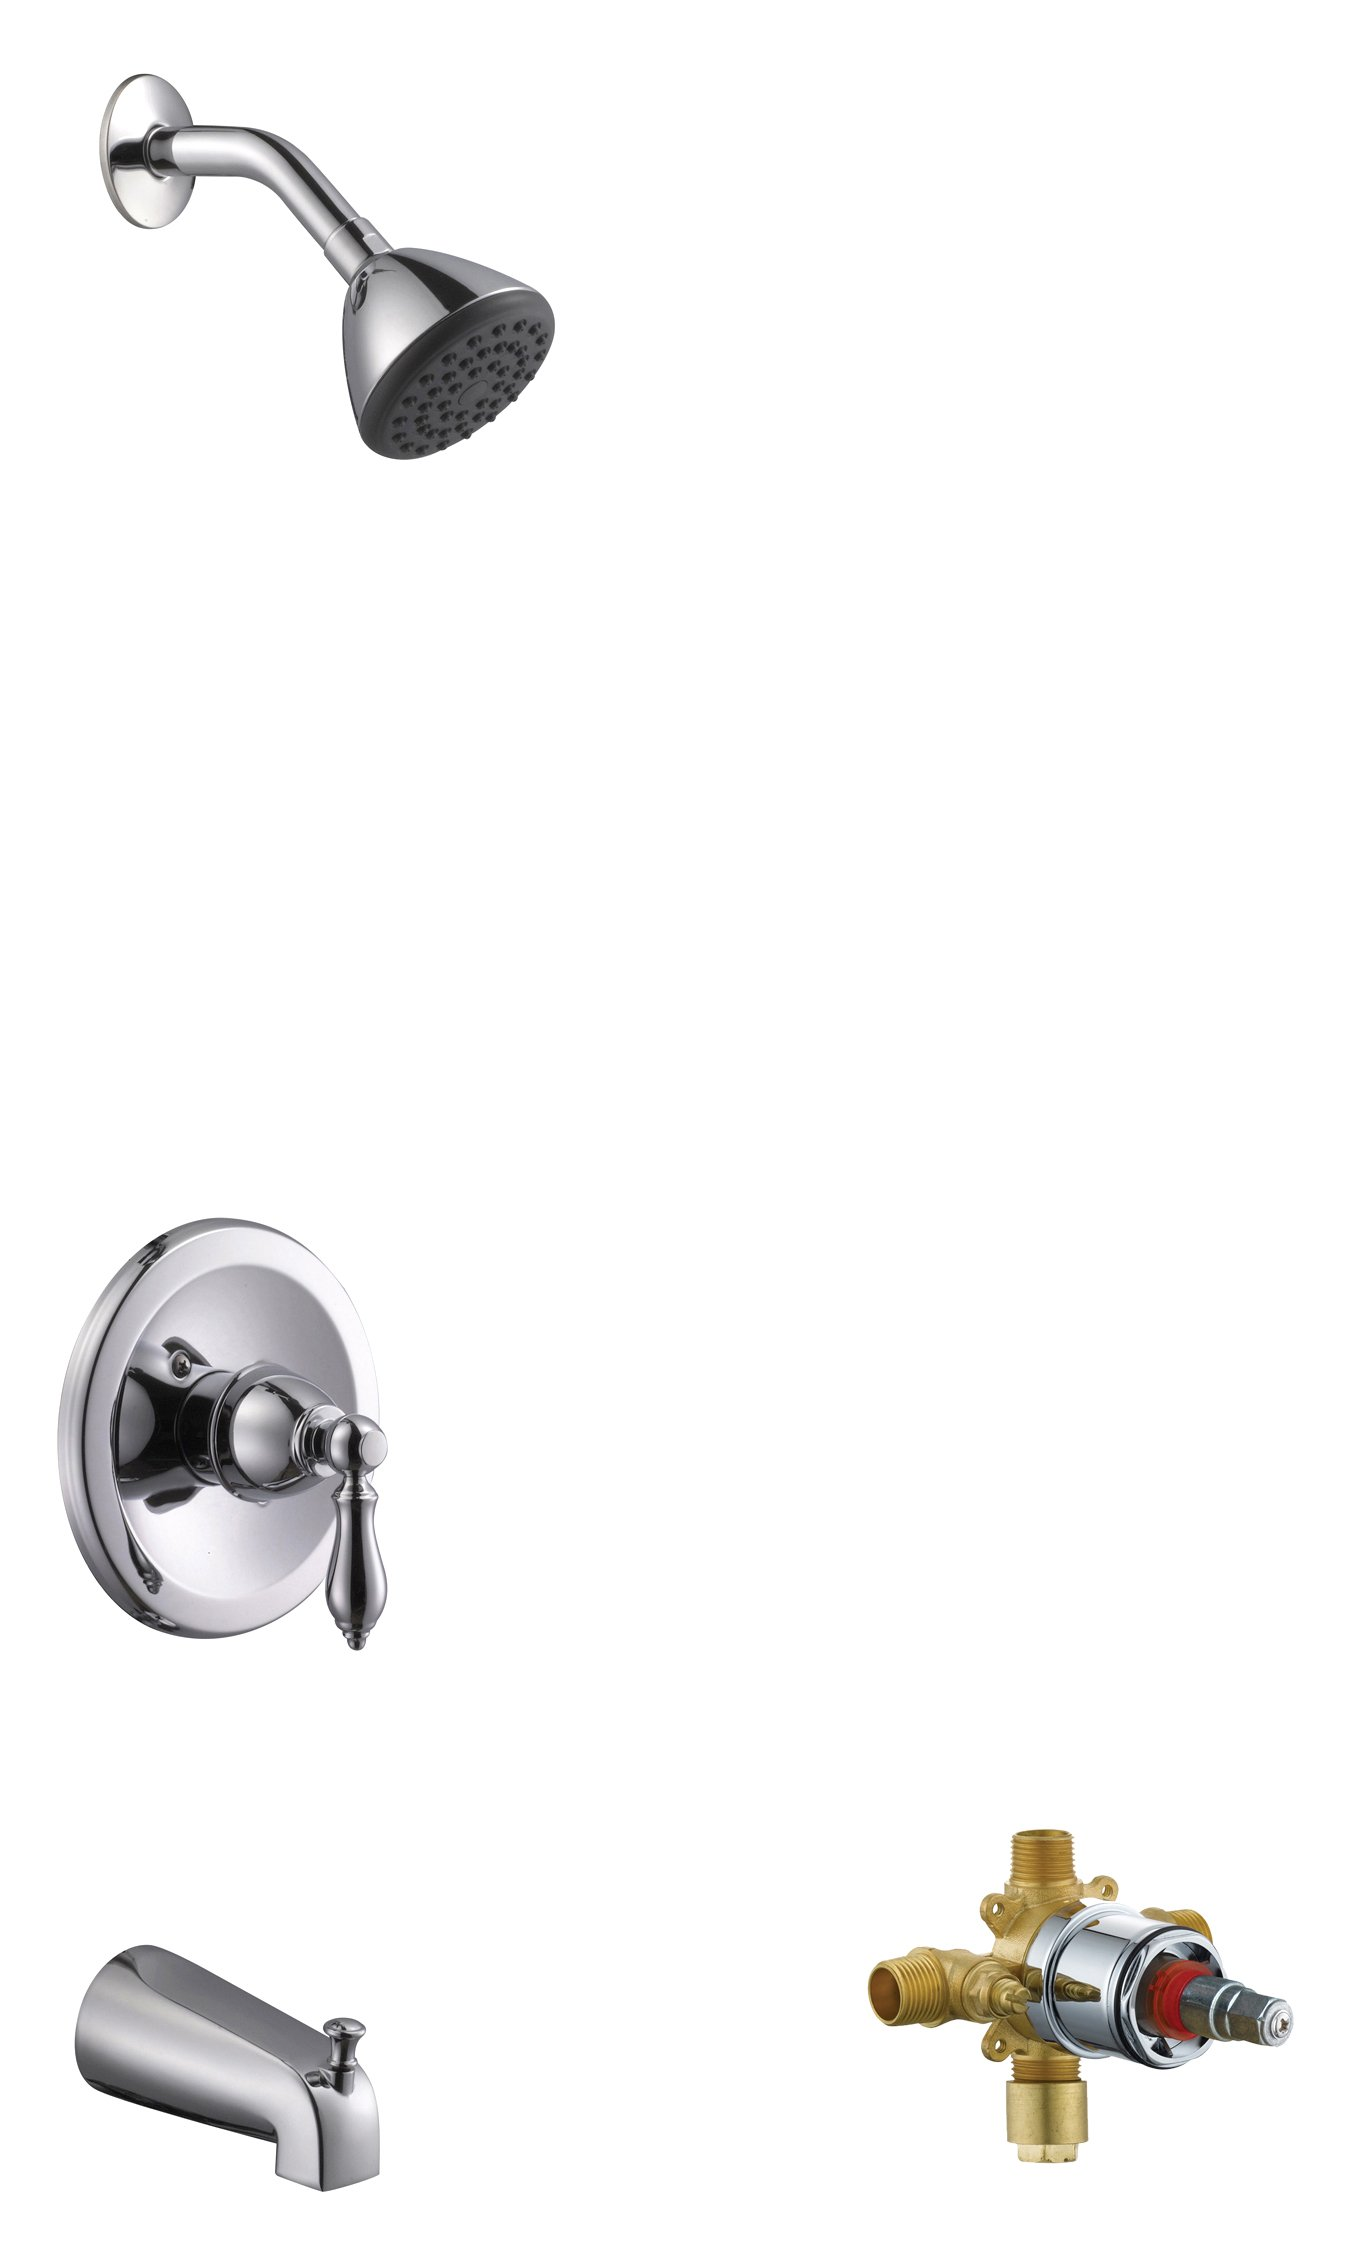 Design House 545640 Hathaway Tub & Shower Faucet, Valve Included,Polished Chrome